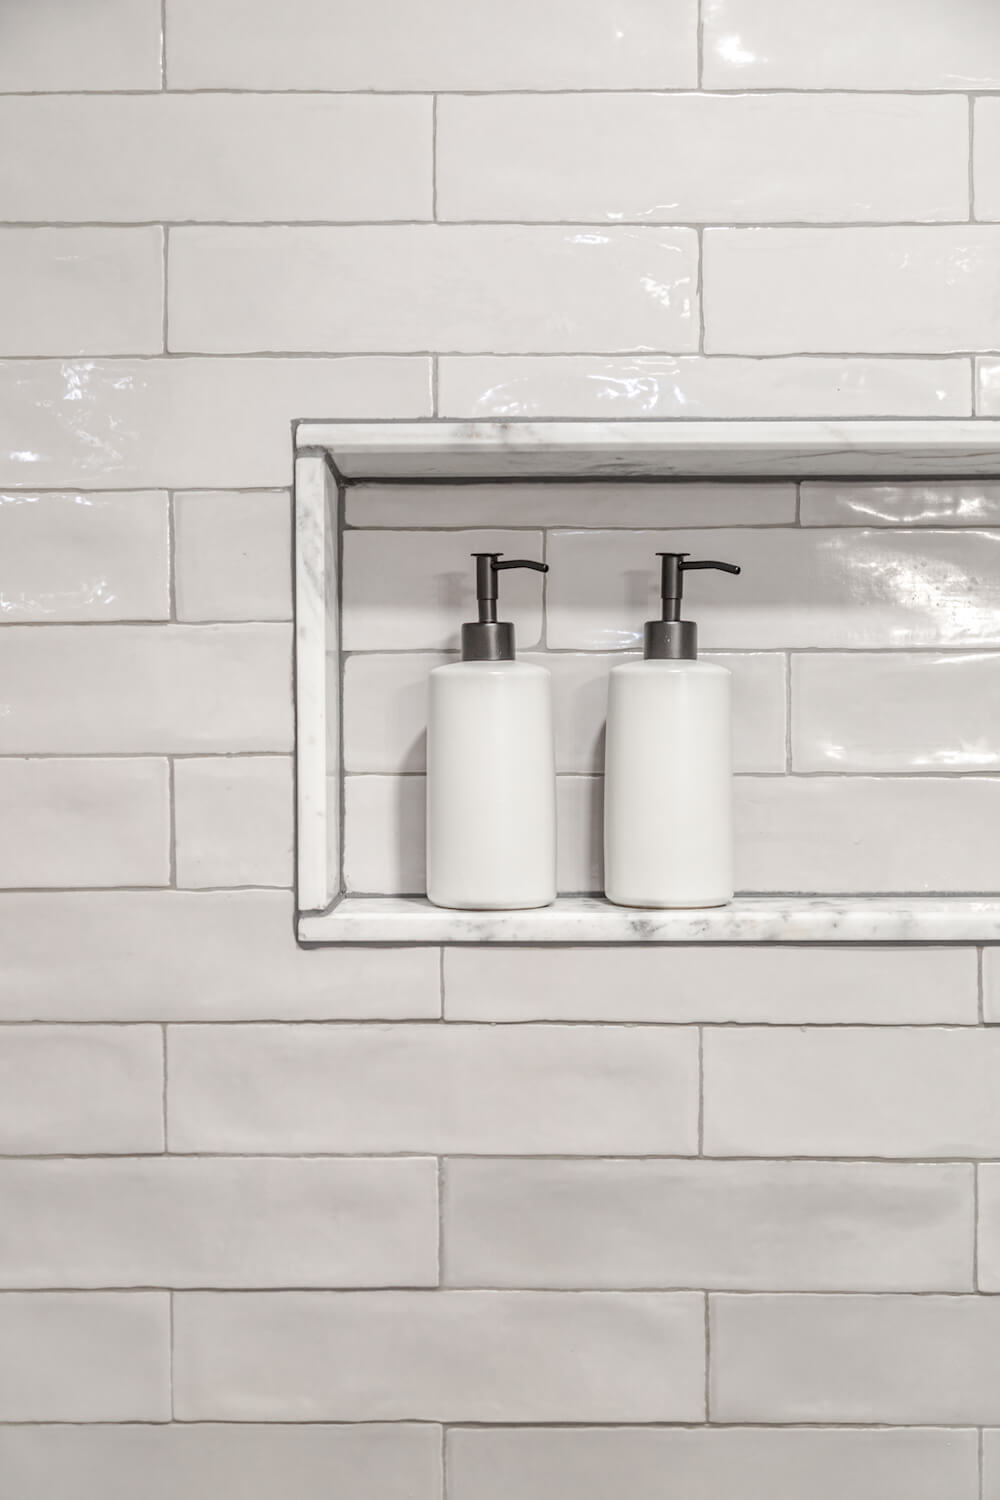 Image of recessed shower niche with white tile